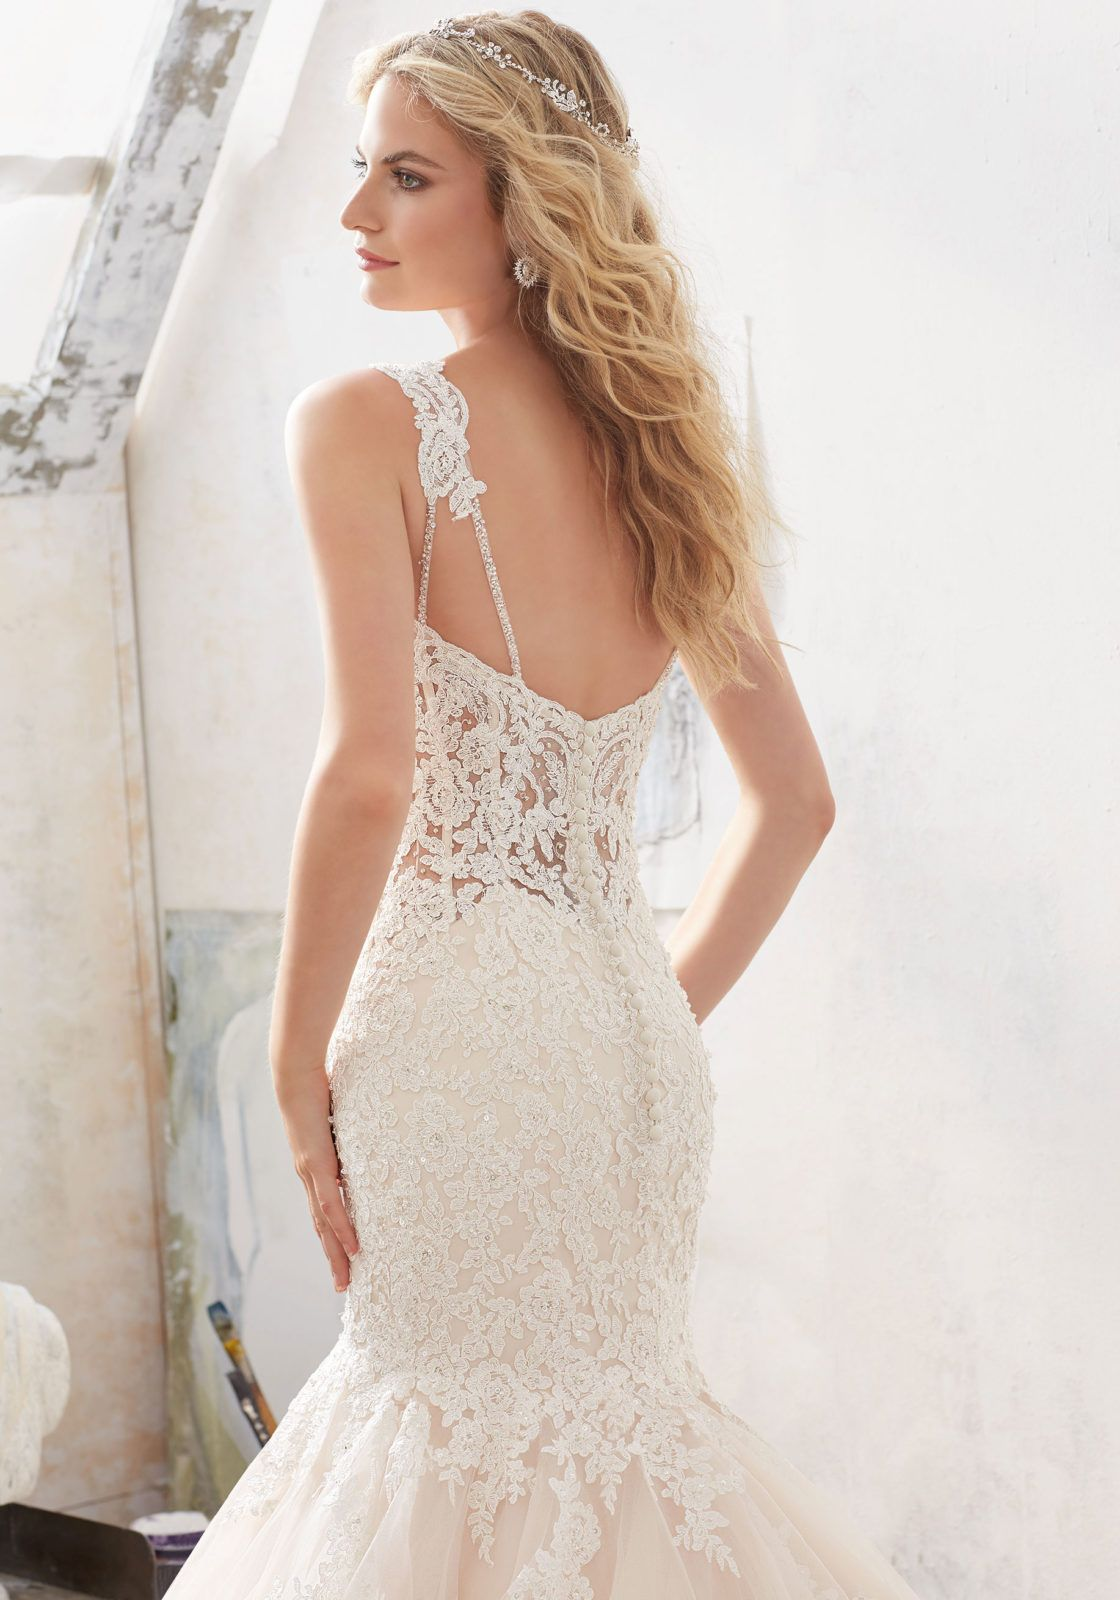 Mori lee wedding dresses discontinued styles  Morilee Style   Morilee by Madeline Gardner  Pinterest